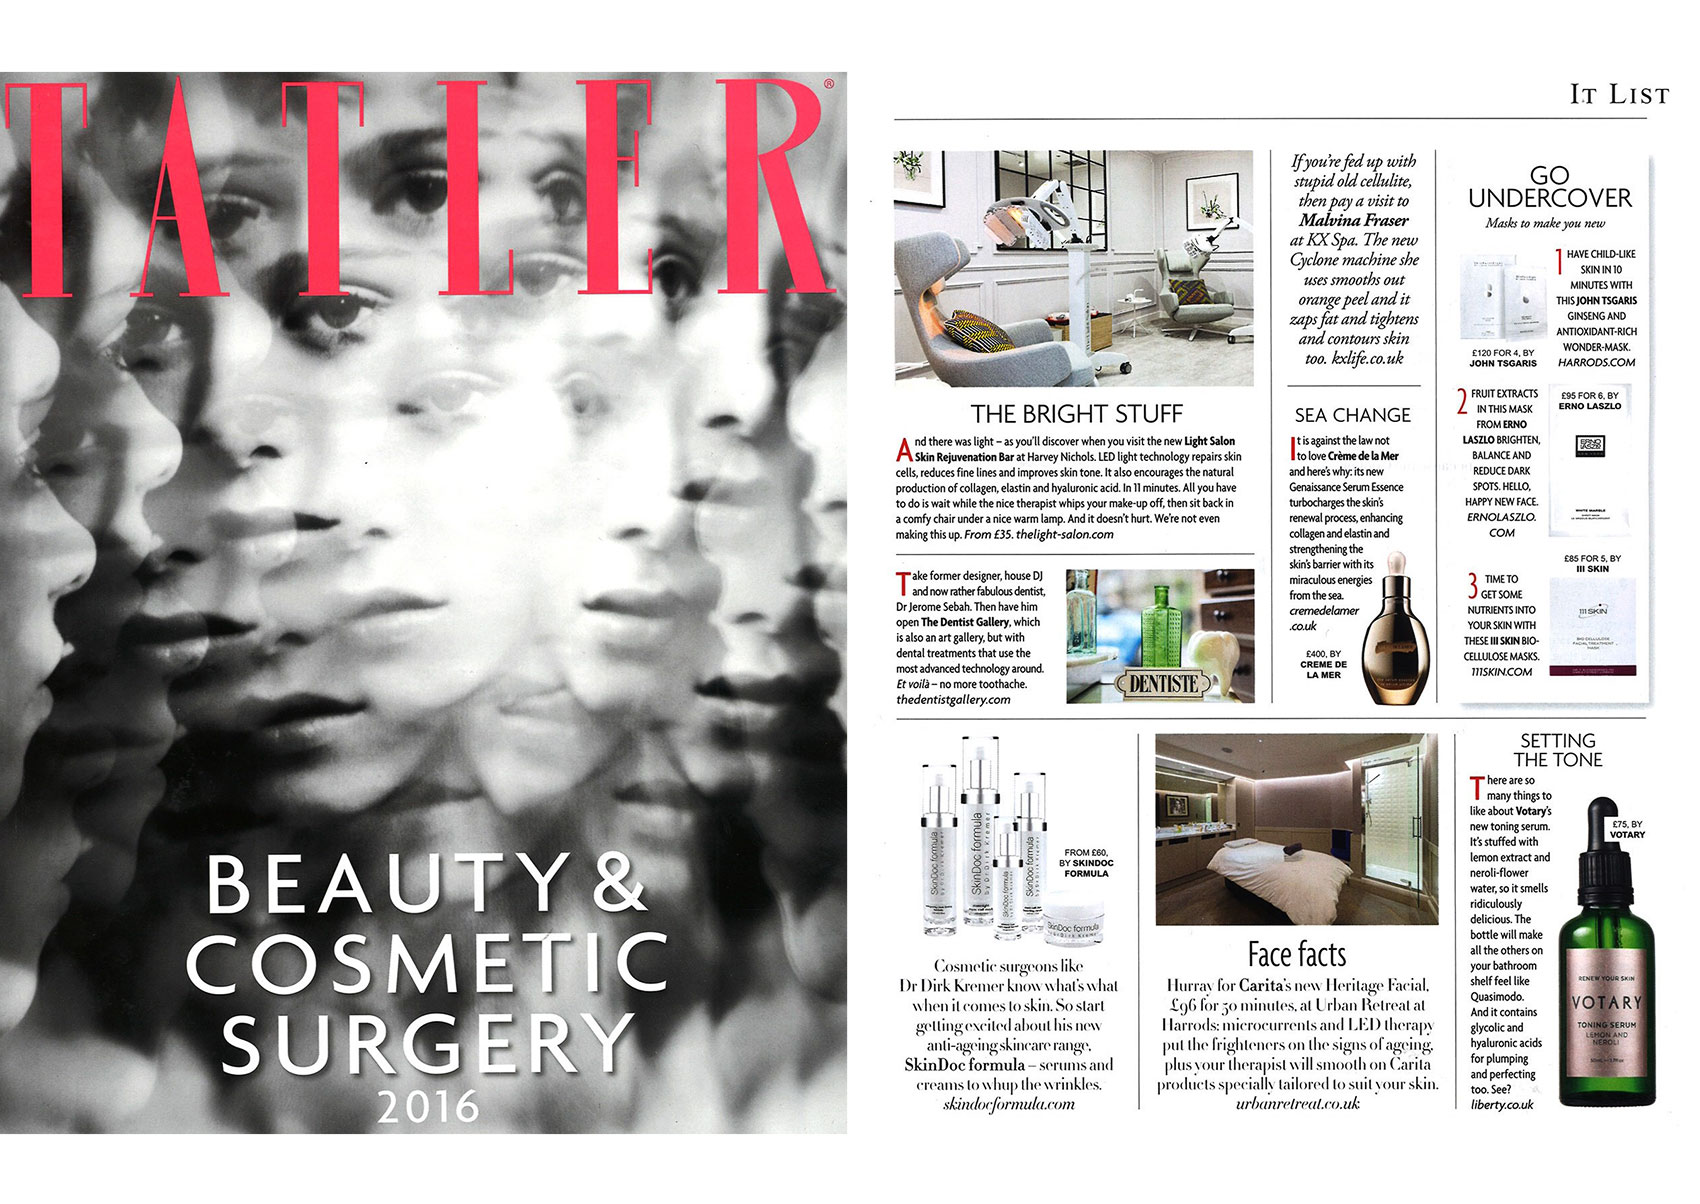 Tatler_CosmeticGuide_March2016.jpg